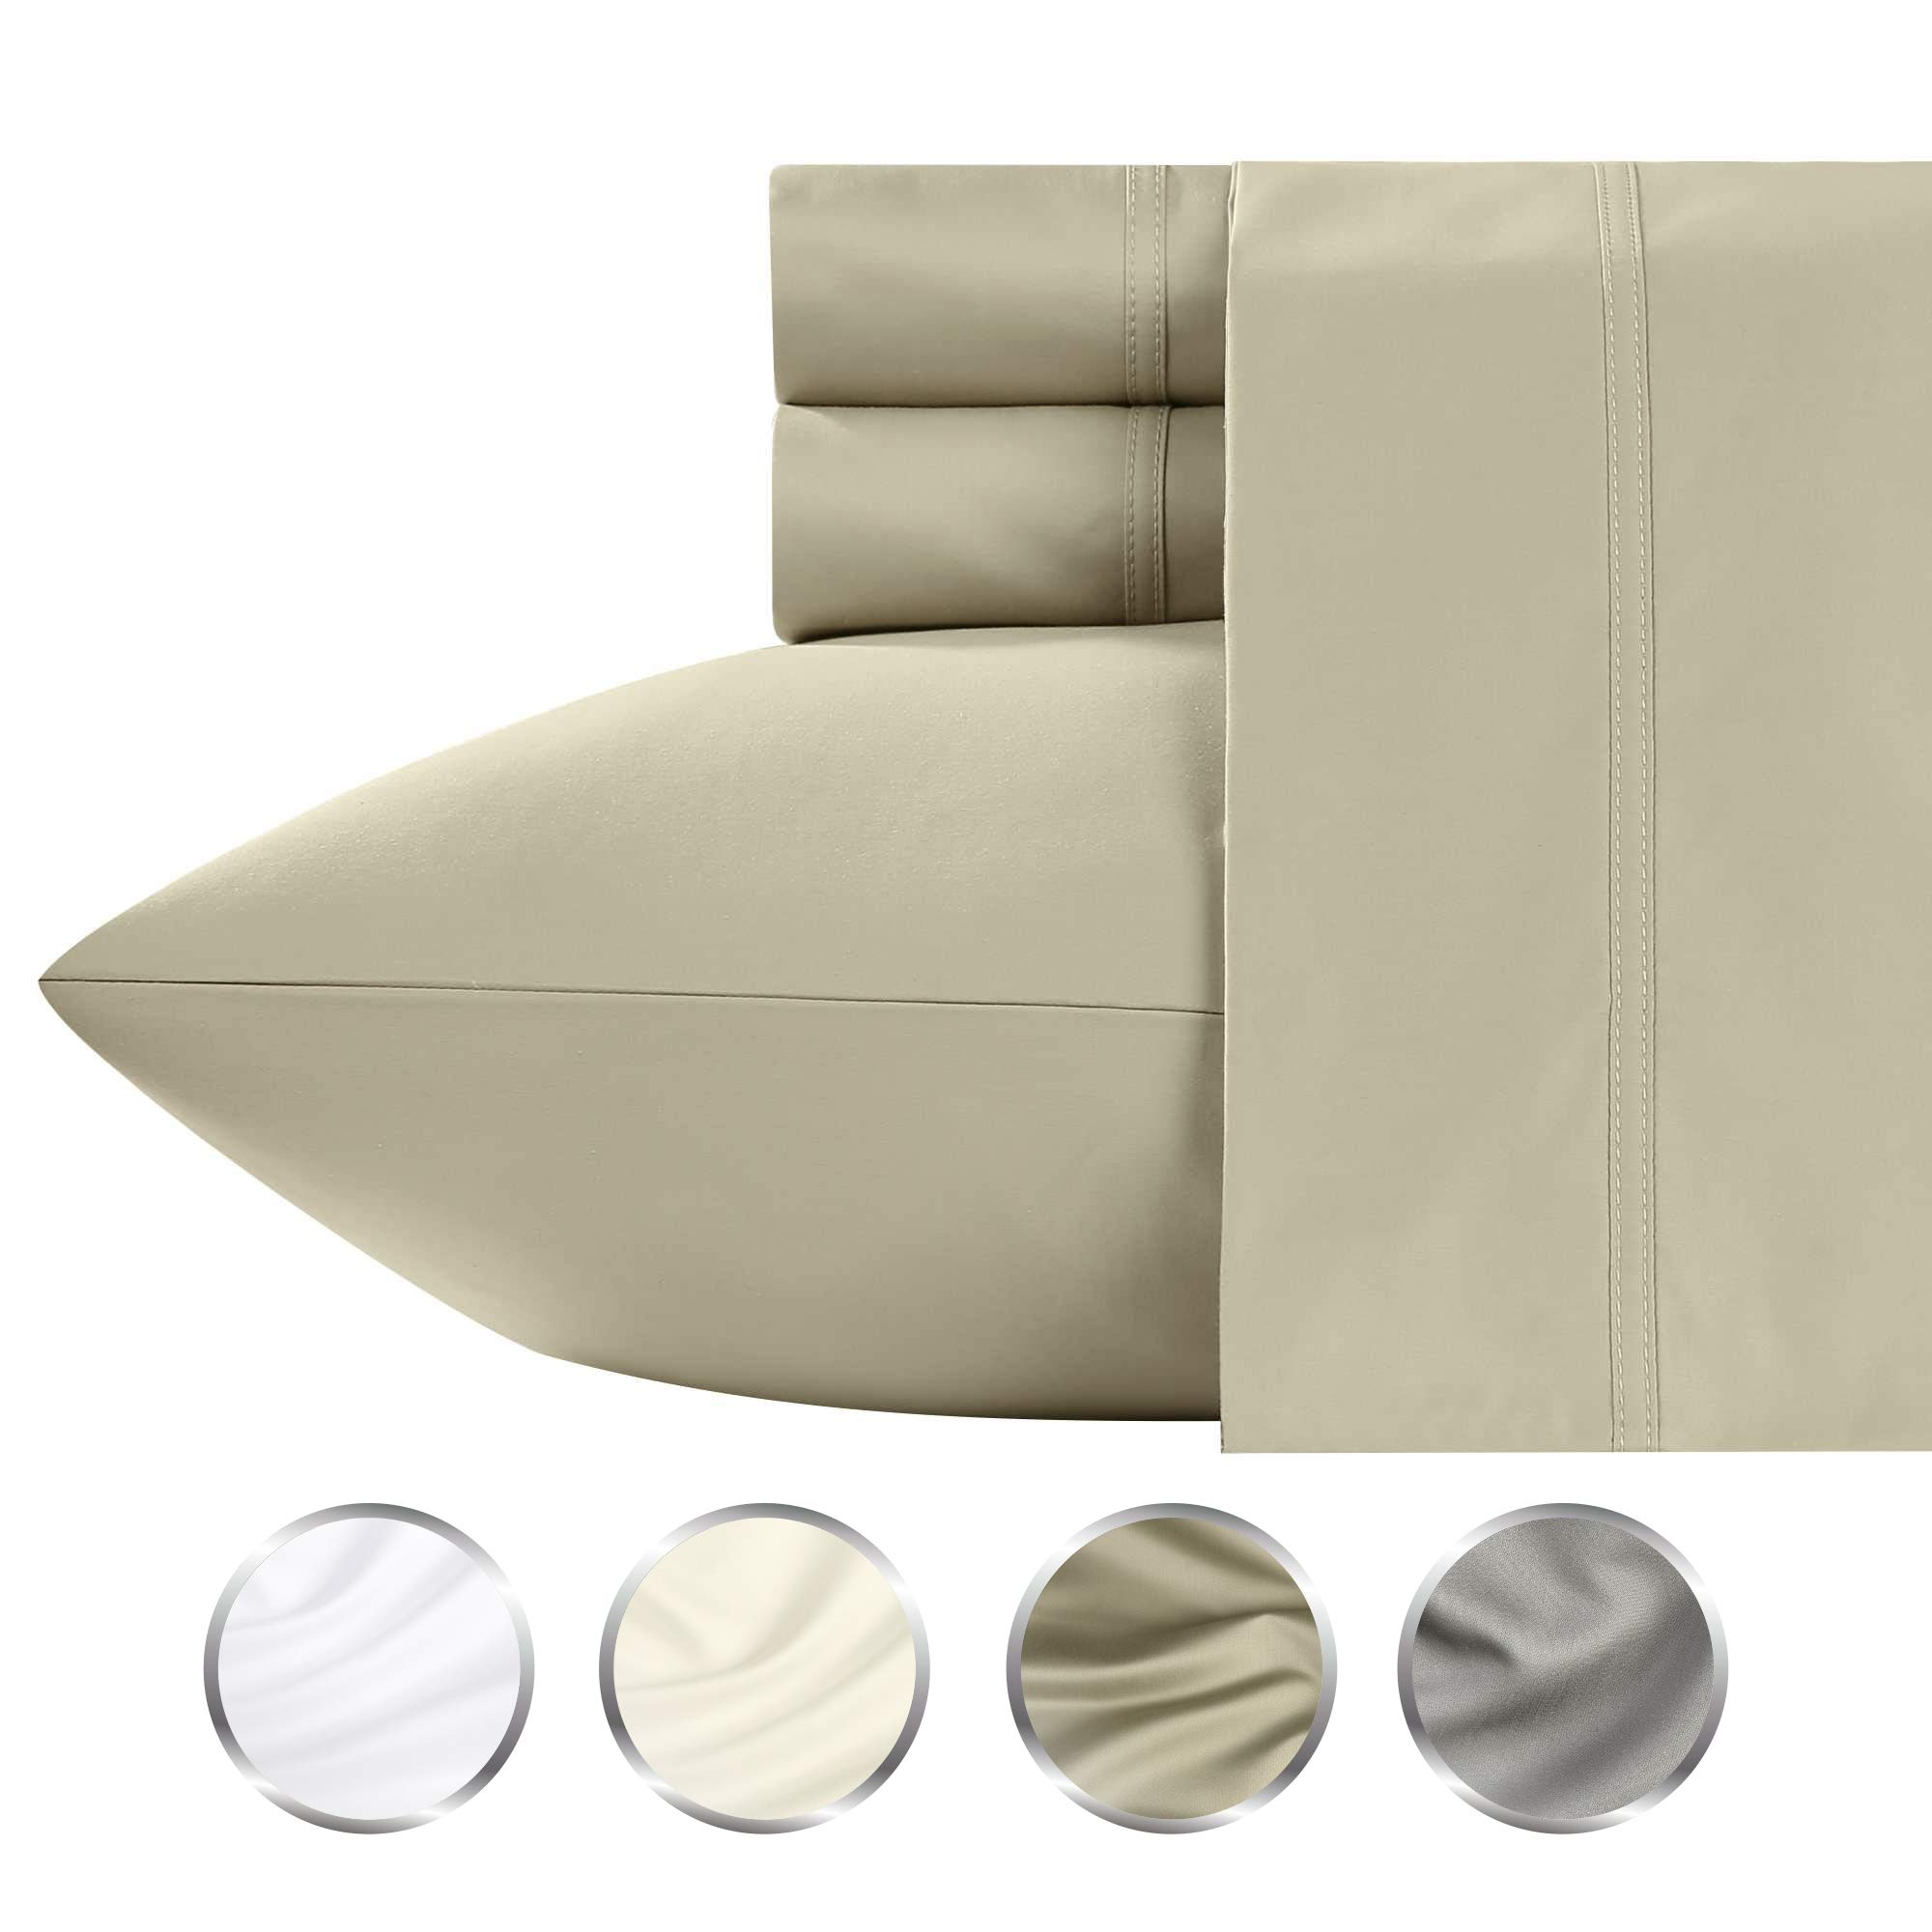 California Design Den High Thread Count Queen Sheets - 1000 TC Taupe 4 Piece Cotton Sheet Set, Deep Pocket Bedding Crafted with Ultra Fine Yarns by California Design Den